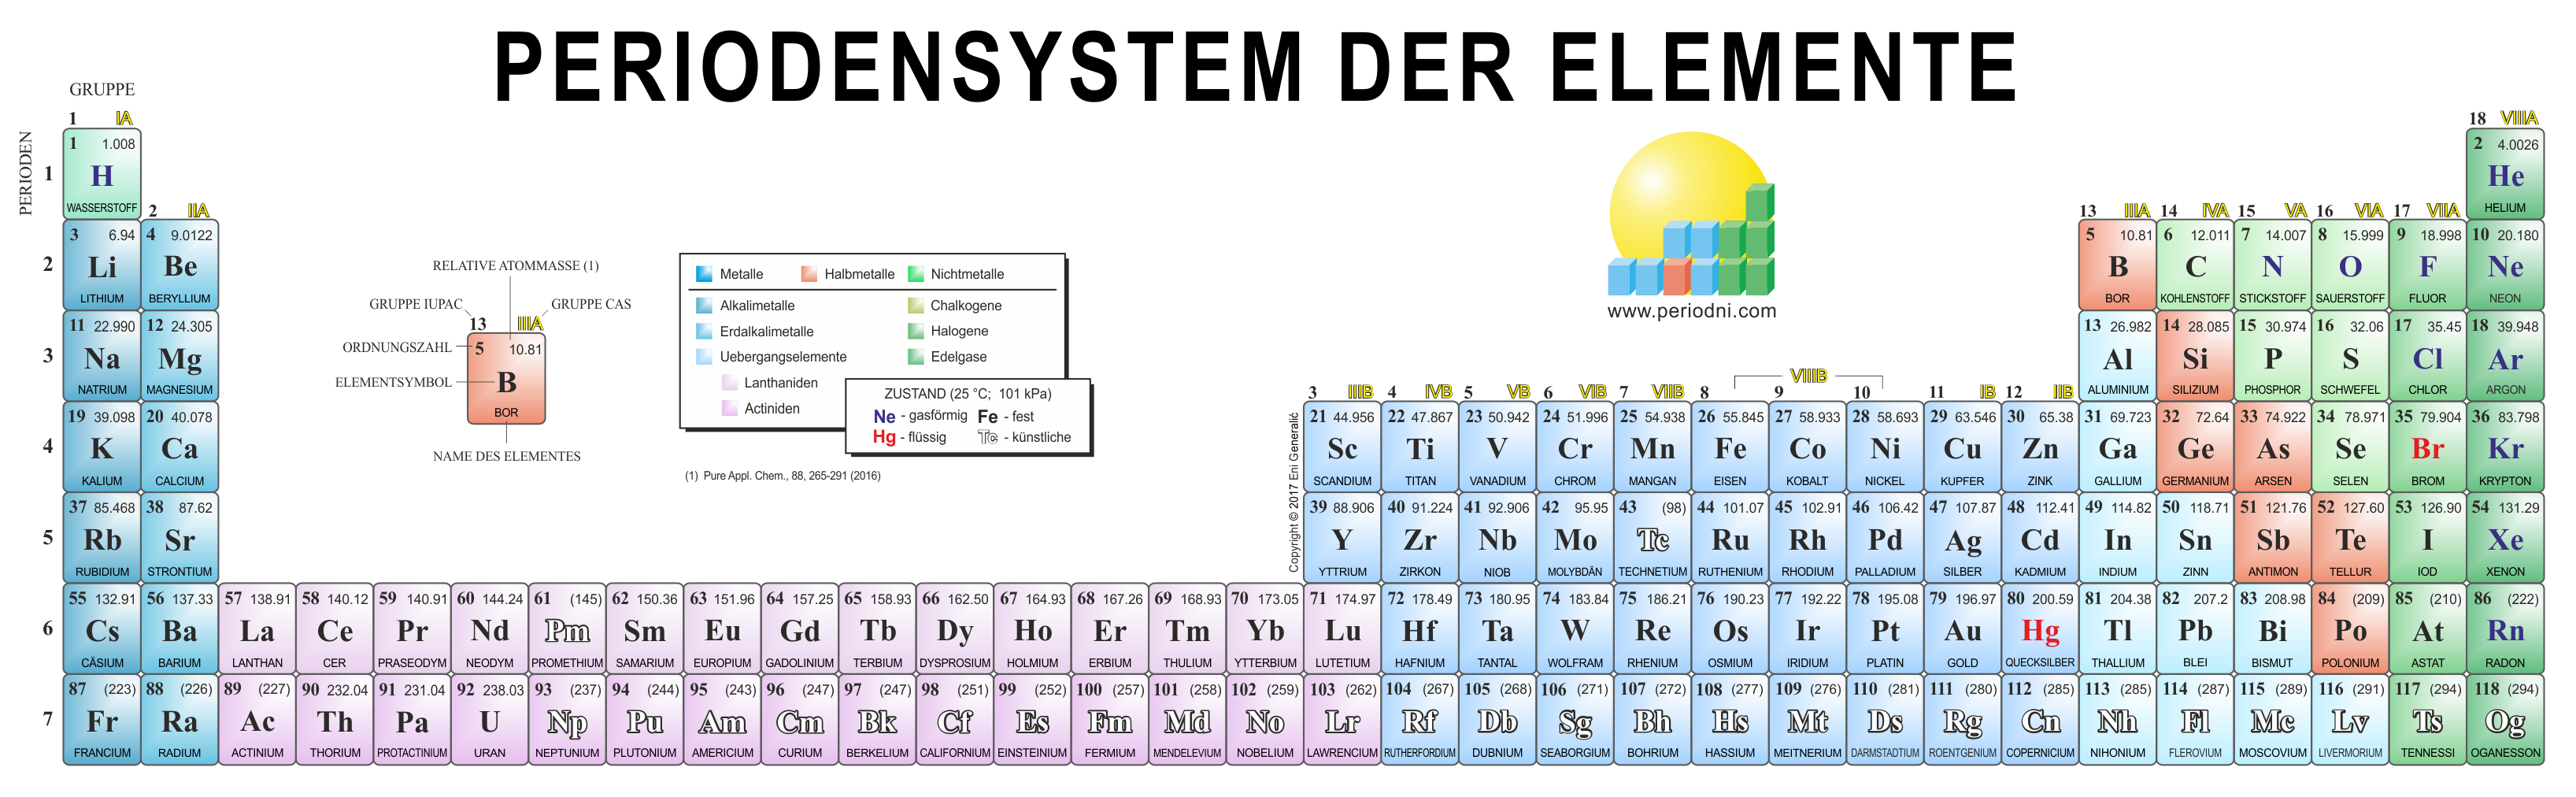 Direct download link: https://www.periodni.com/gallery/32-spalten-form_das_periodensystem.png